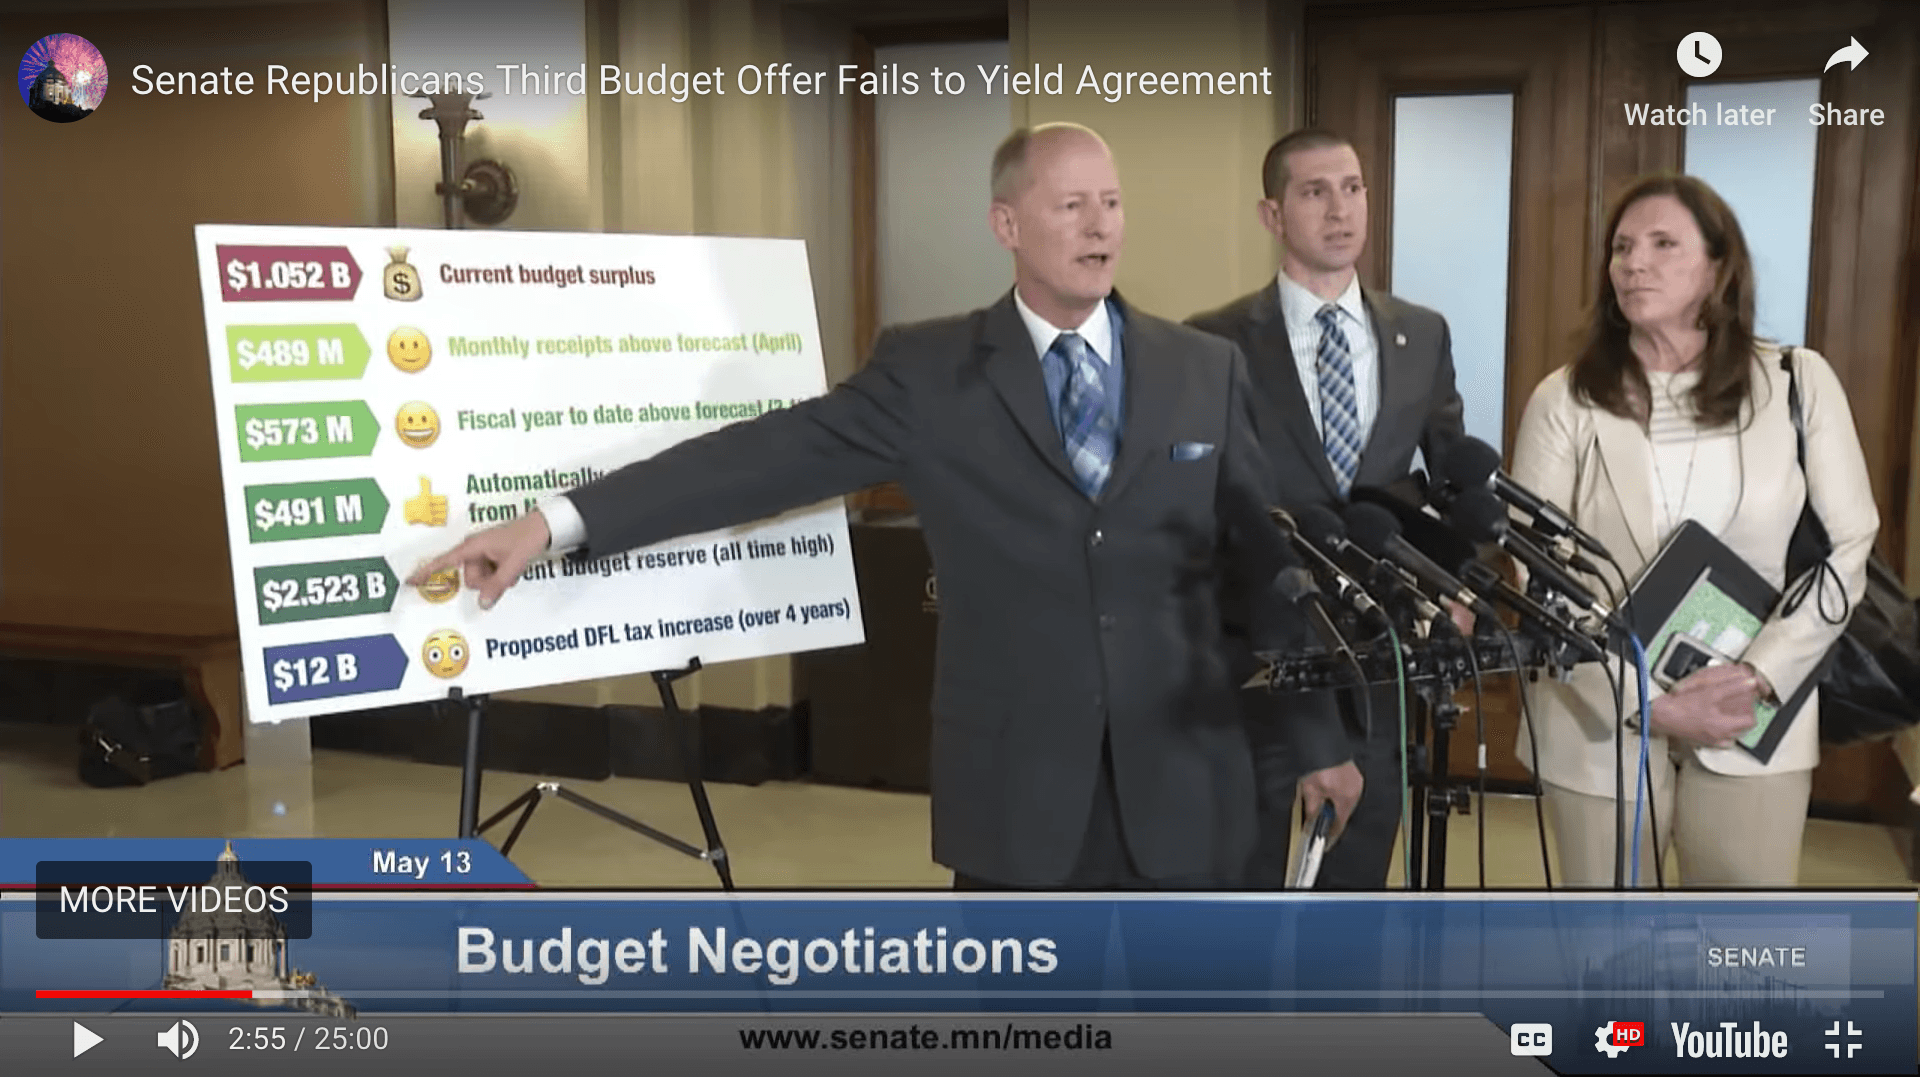 Screenshot from Senate Media video showing senators with budget on poster board, illustrated with emojis.